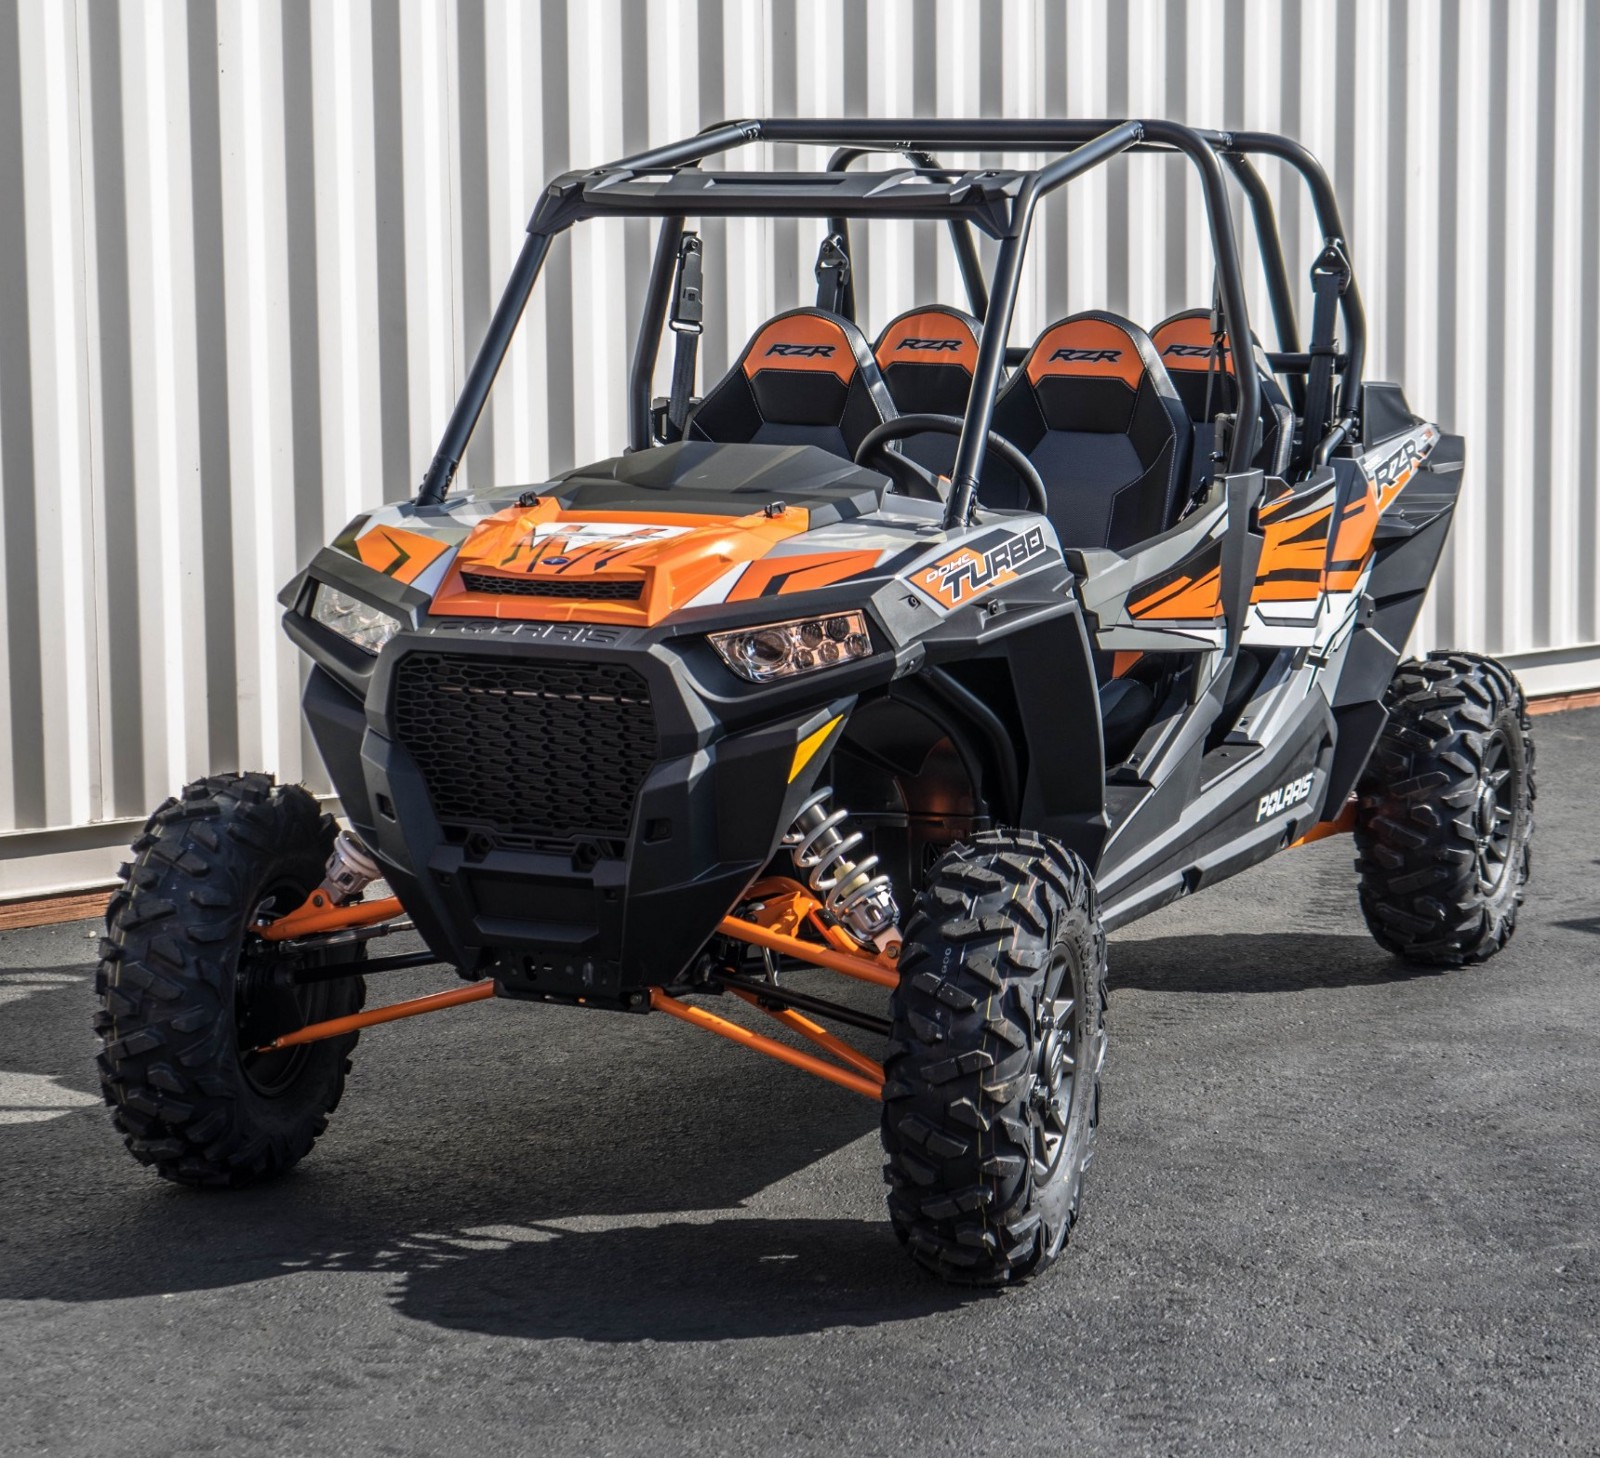 Xp 1000 With Tougher Driveline Stronger Engine And Better Transmission Installed A Turbo Intercooler Also Polaris Rzr Accessories Are